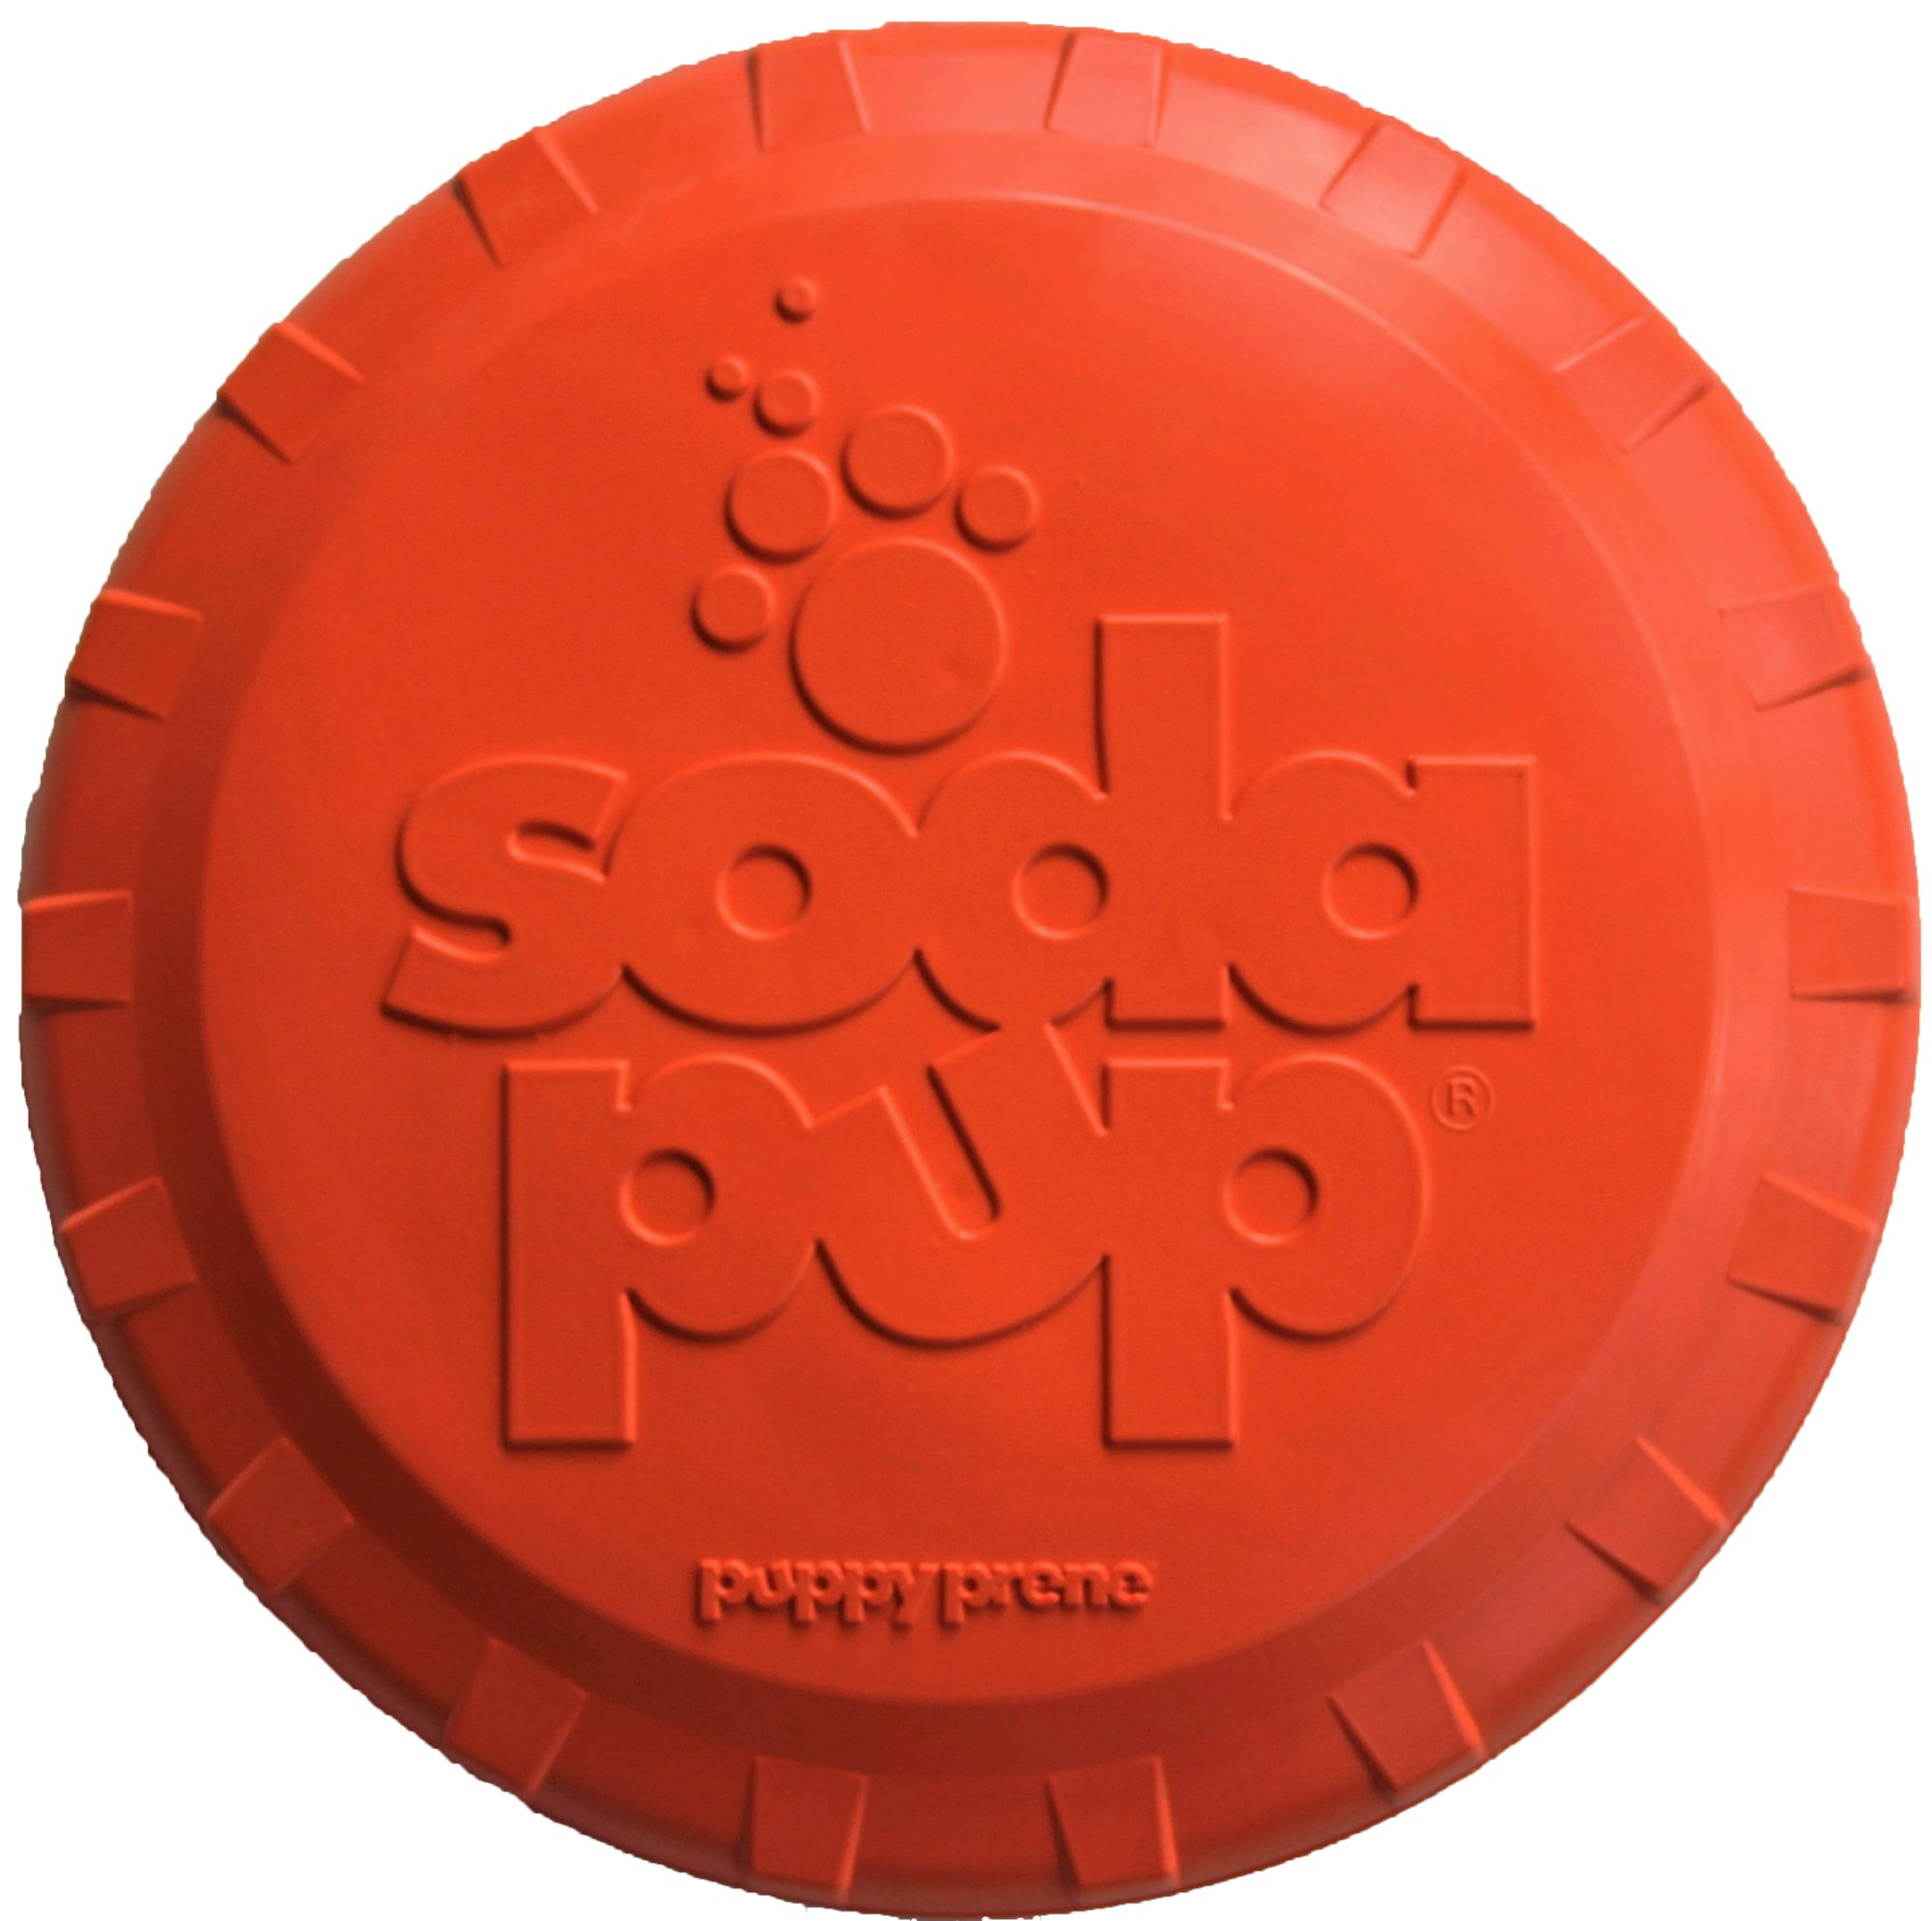 SodaPup Dog Frisbee - Tough dog toys for large dogs Premier Dog Toys to Play Fetch with, USA Made - Orange - Small